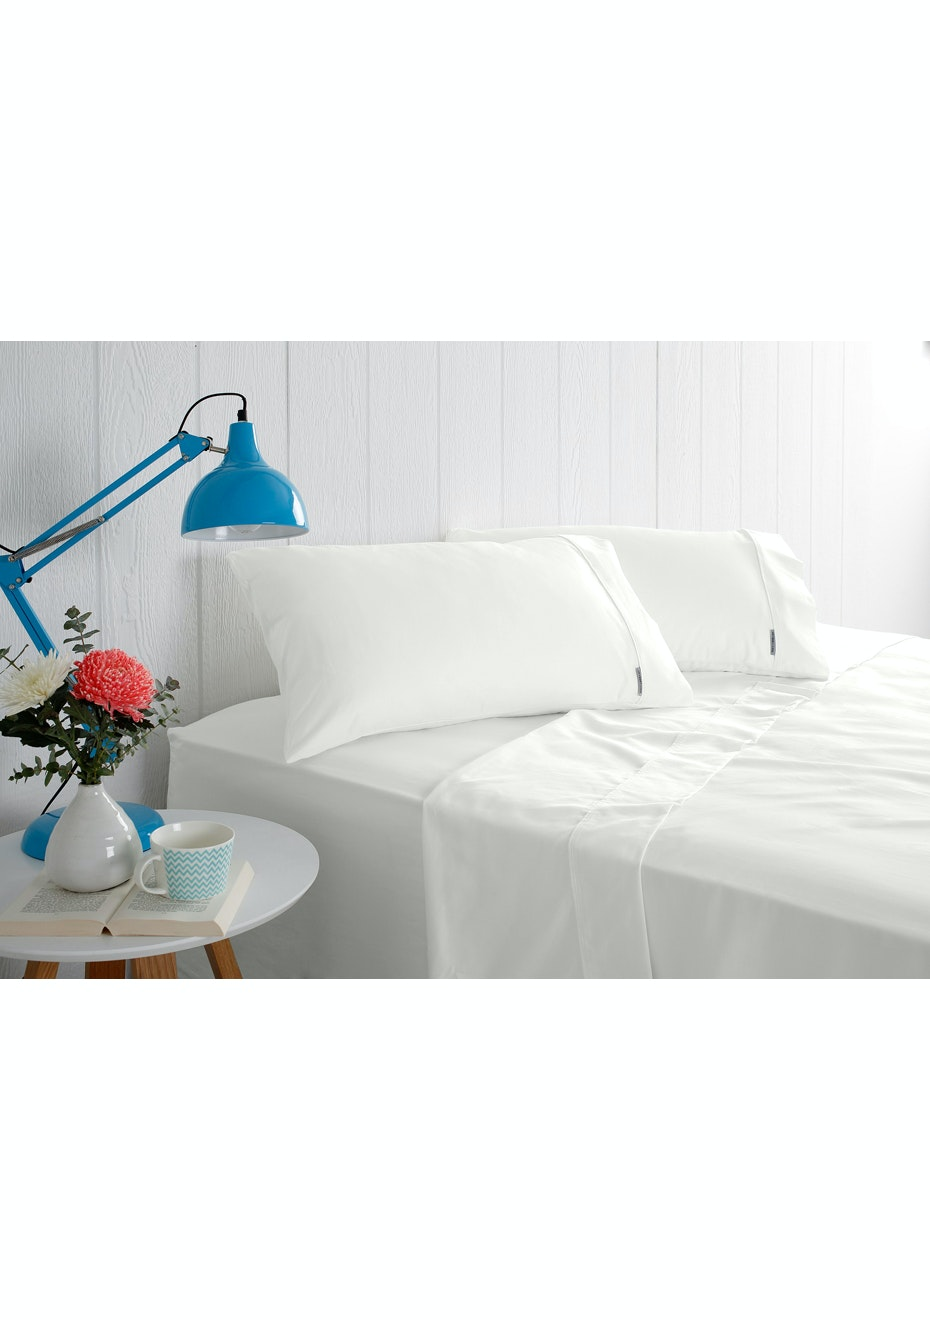 Odyssey Living 1000 Thread Count – Cotton Rich Sheet Sets -White- King Bed